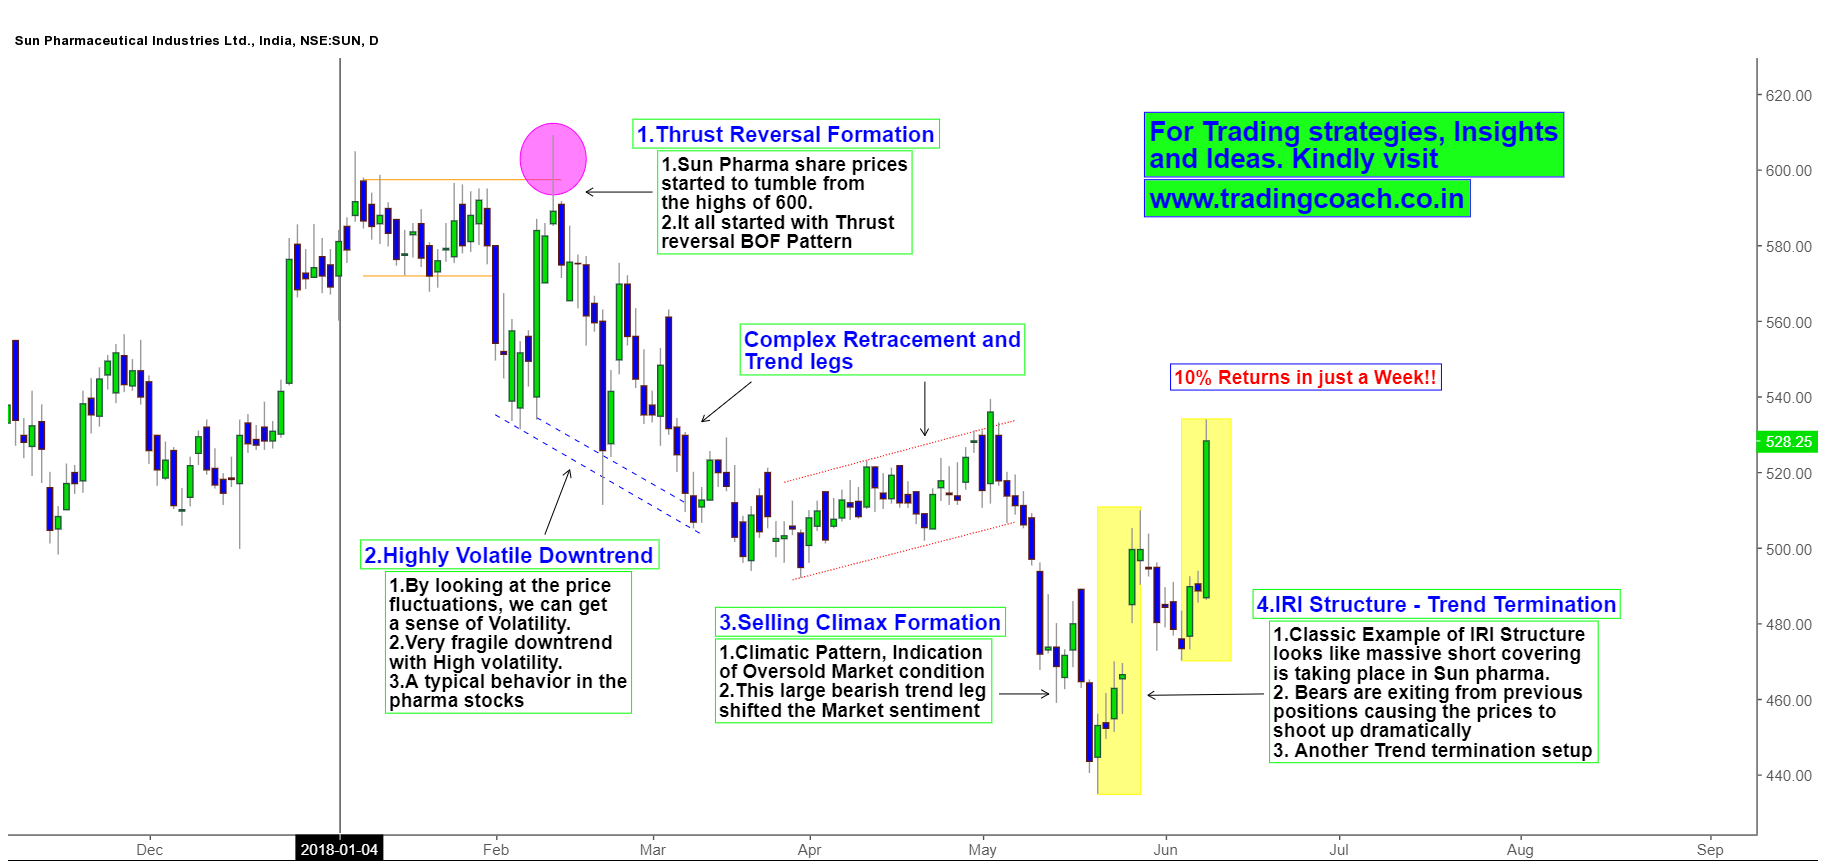 Sun Pharma Daily chart - Price action shows trend termination structure